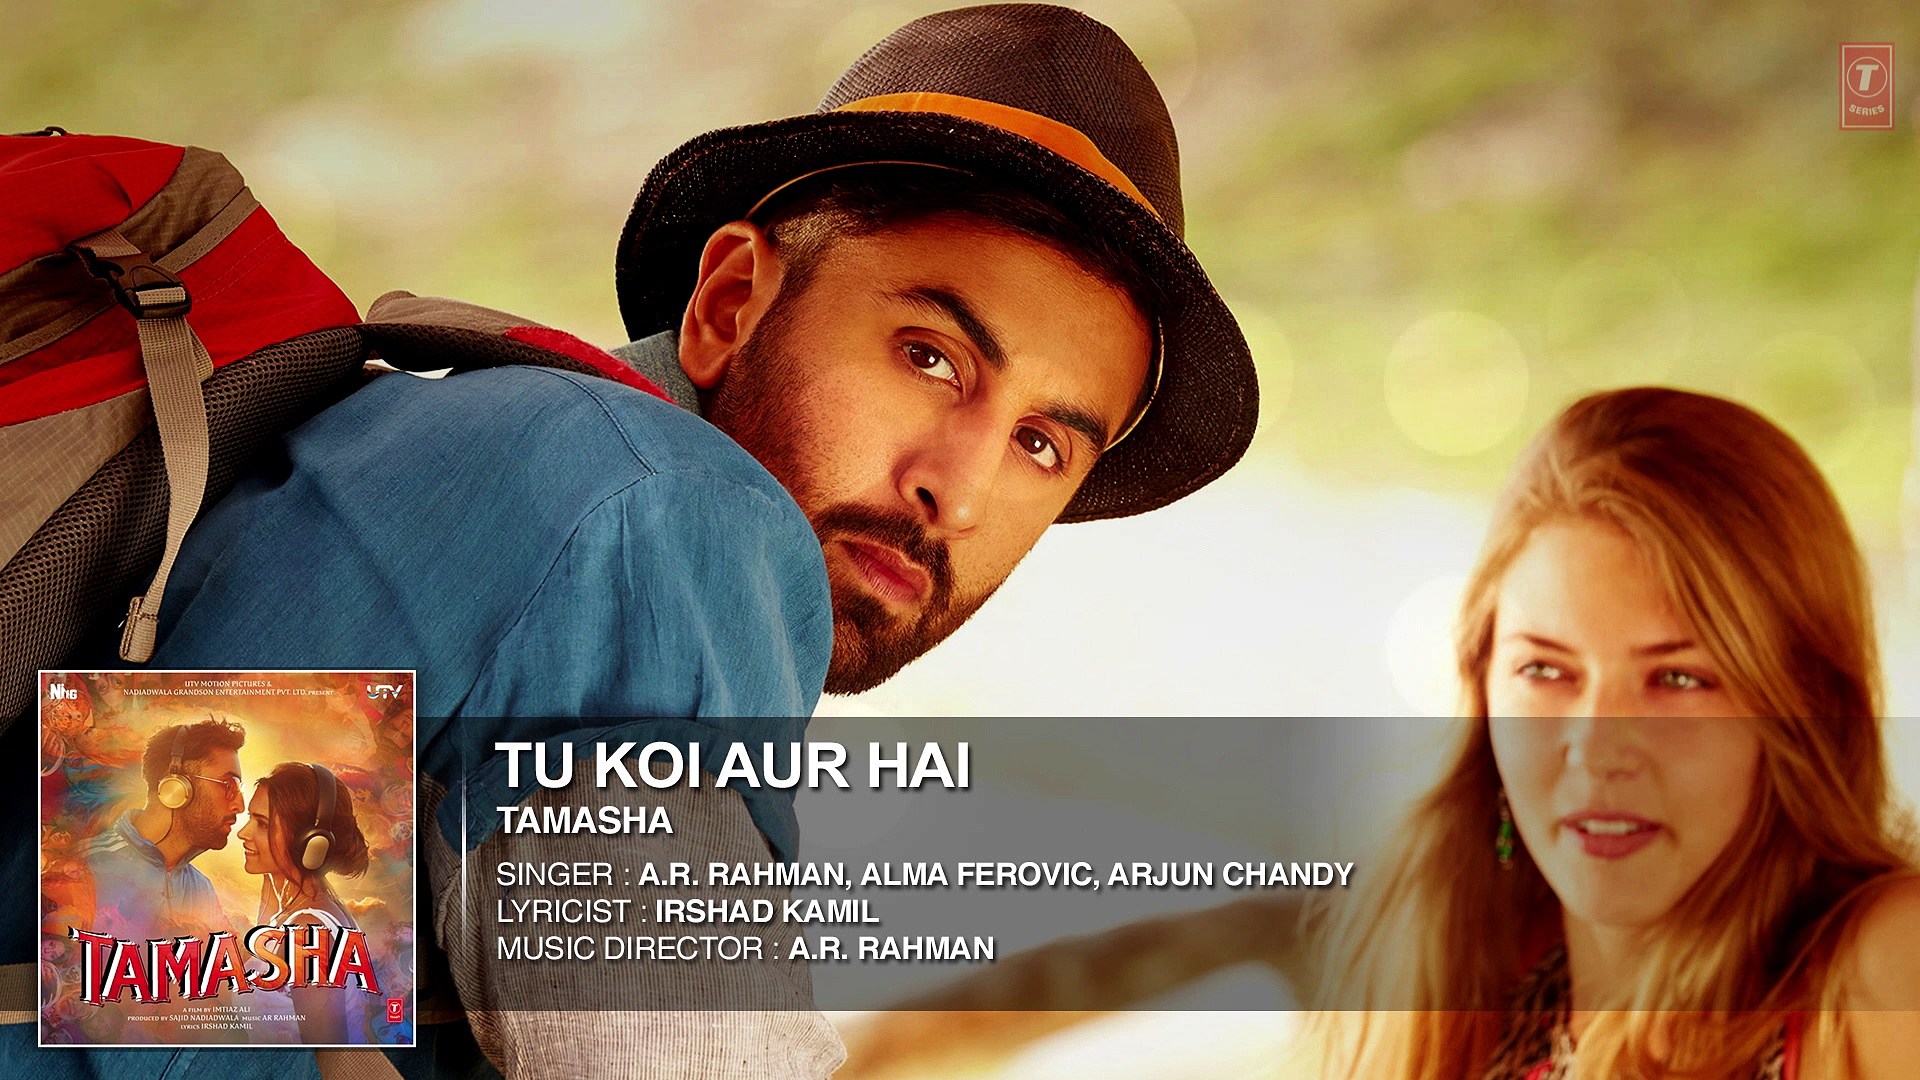 Tu Koi Aur Hai Song Lyrics and Video | Tamasha Movie Song | A. R. Rahman